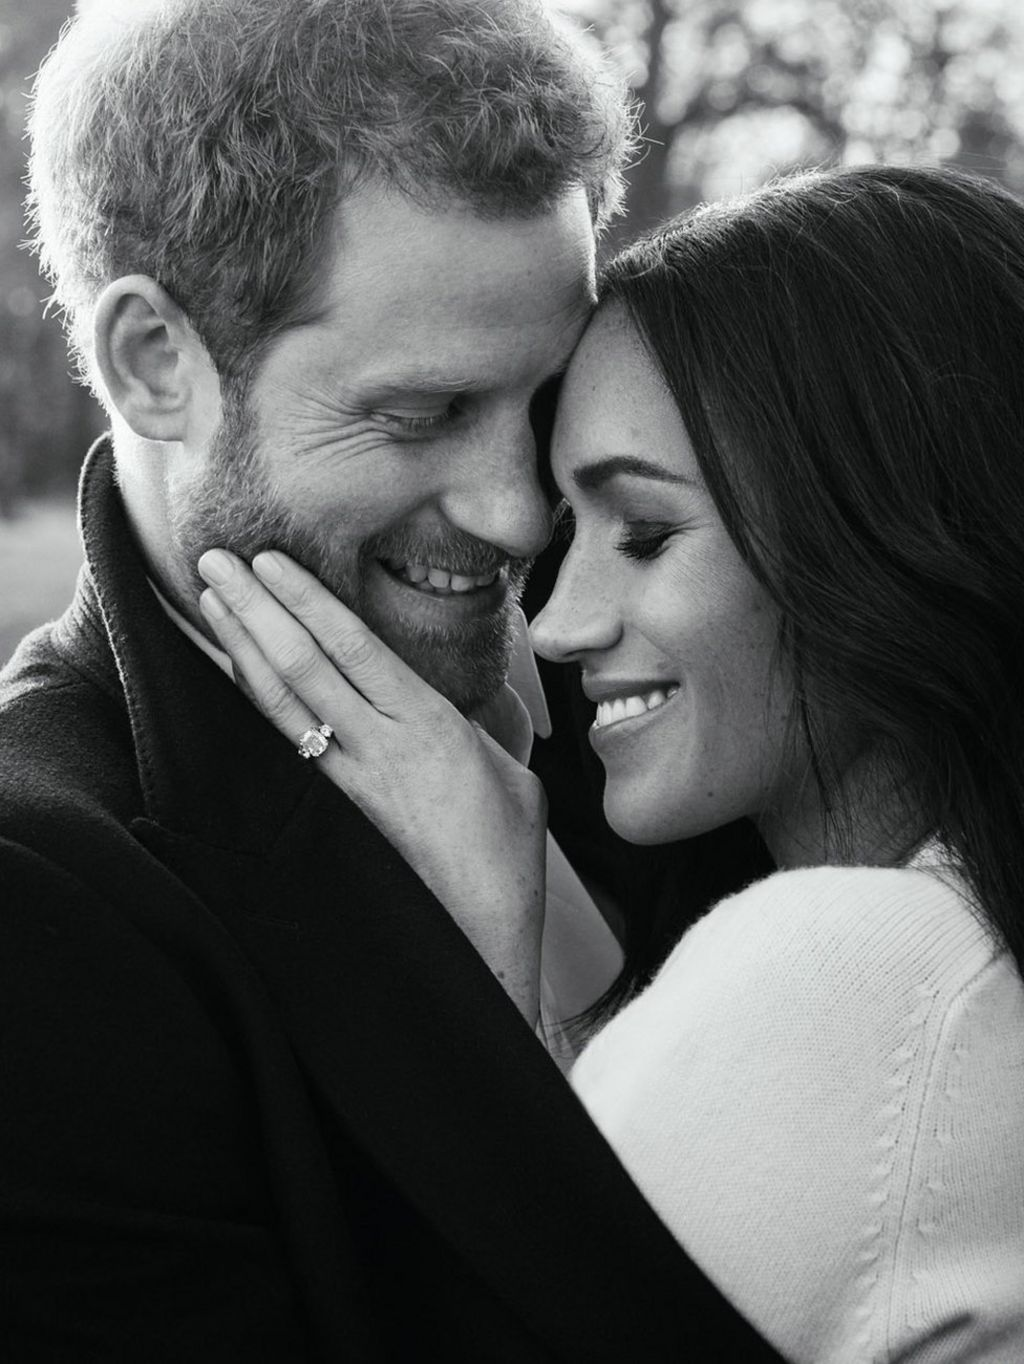 Prince Harry and Meghan Markle engagement photos released